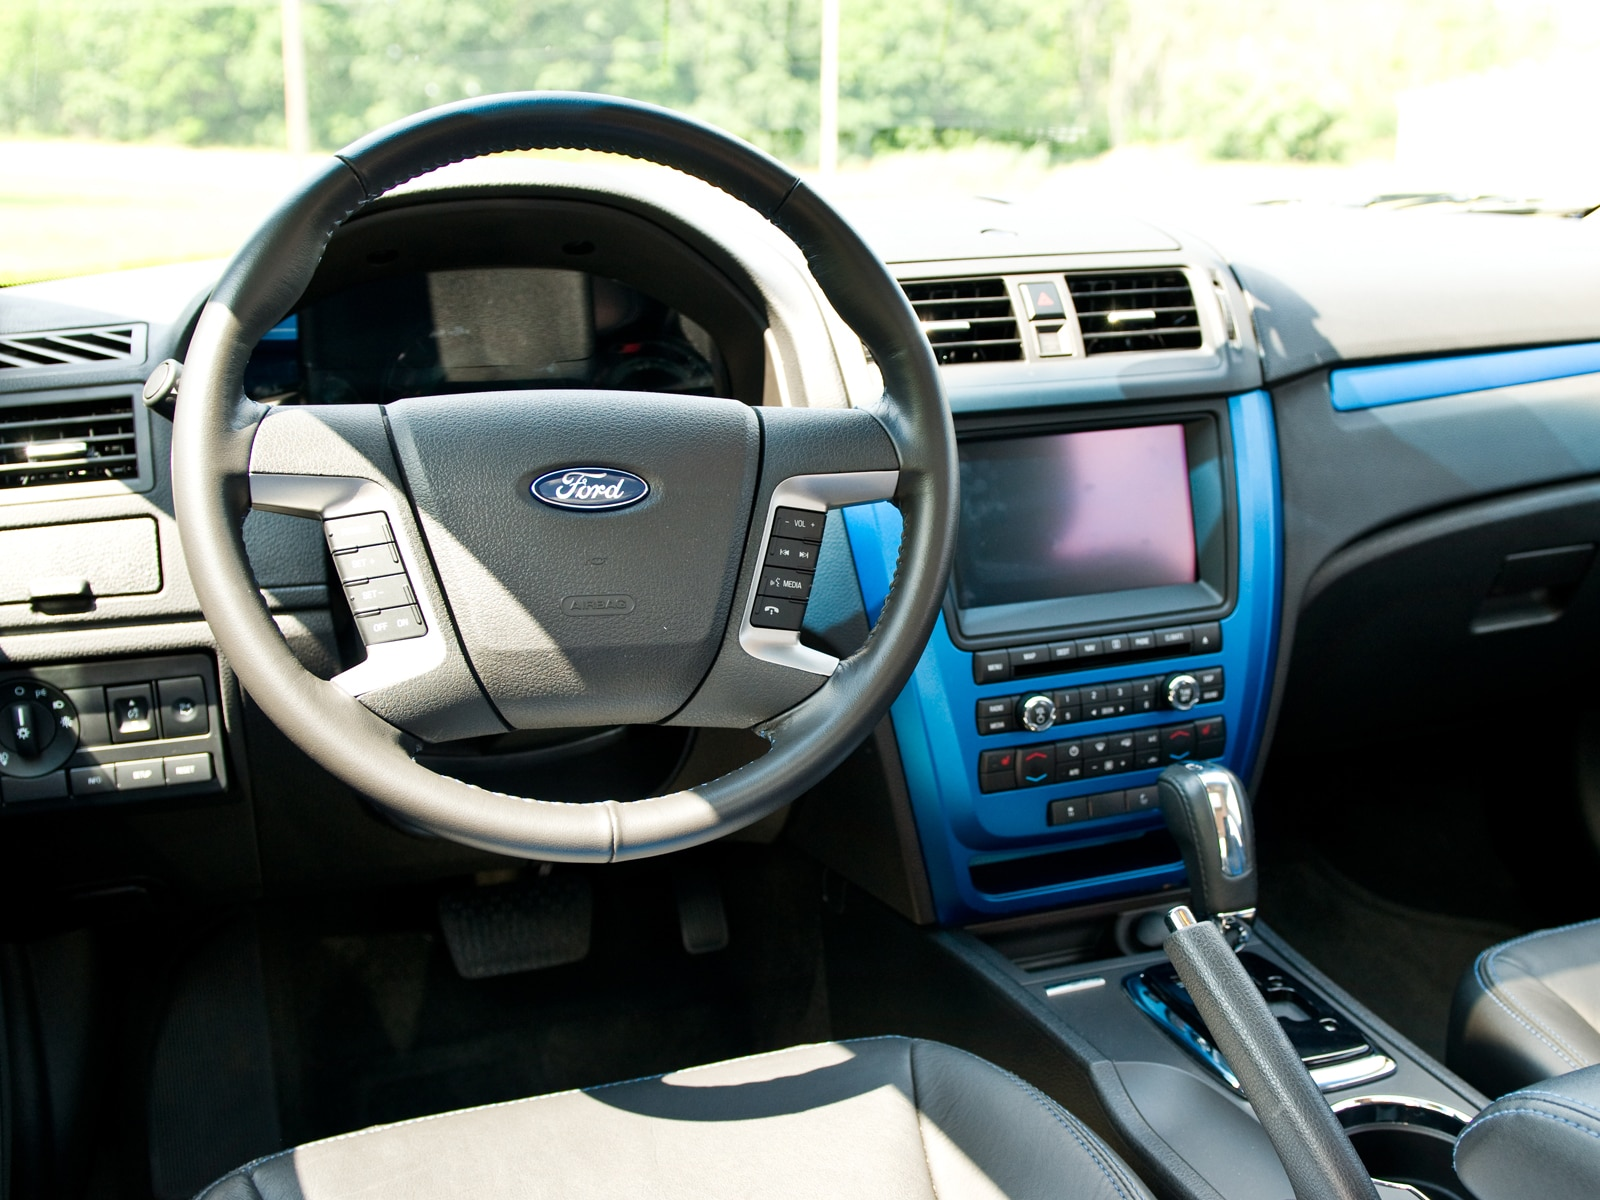 2010 Ford Fusion Sport AWD  Ford Midsize Sport Sedan Review